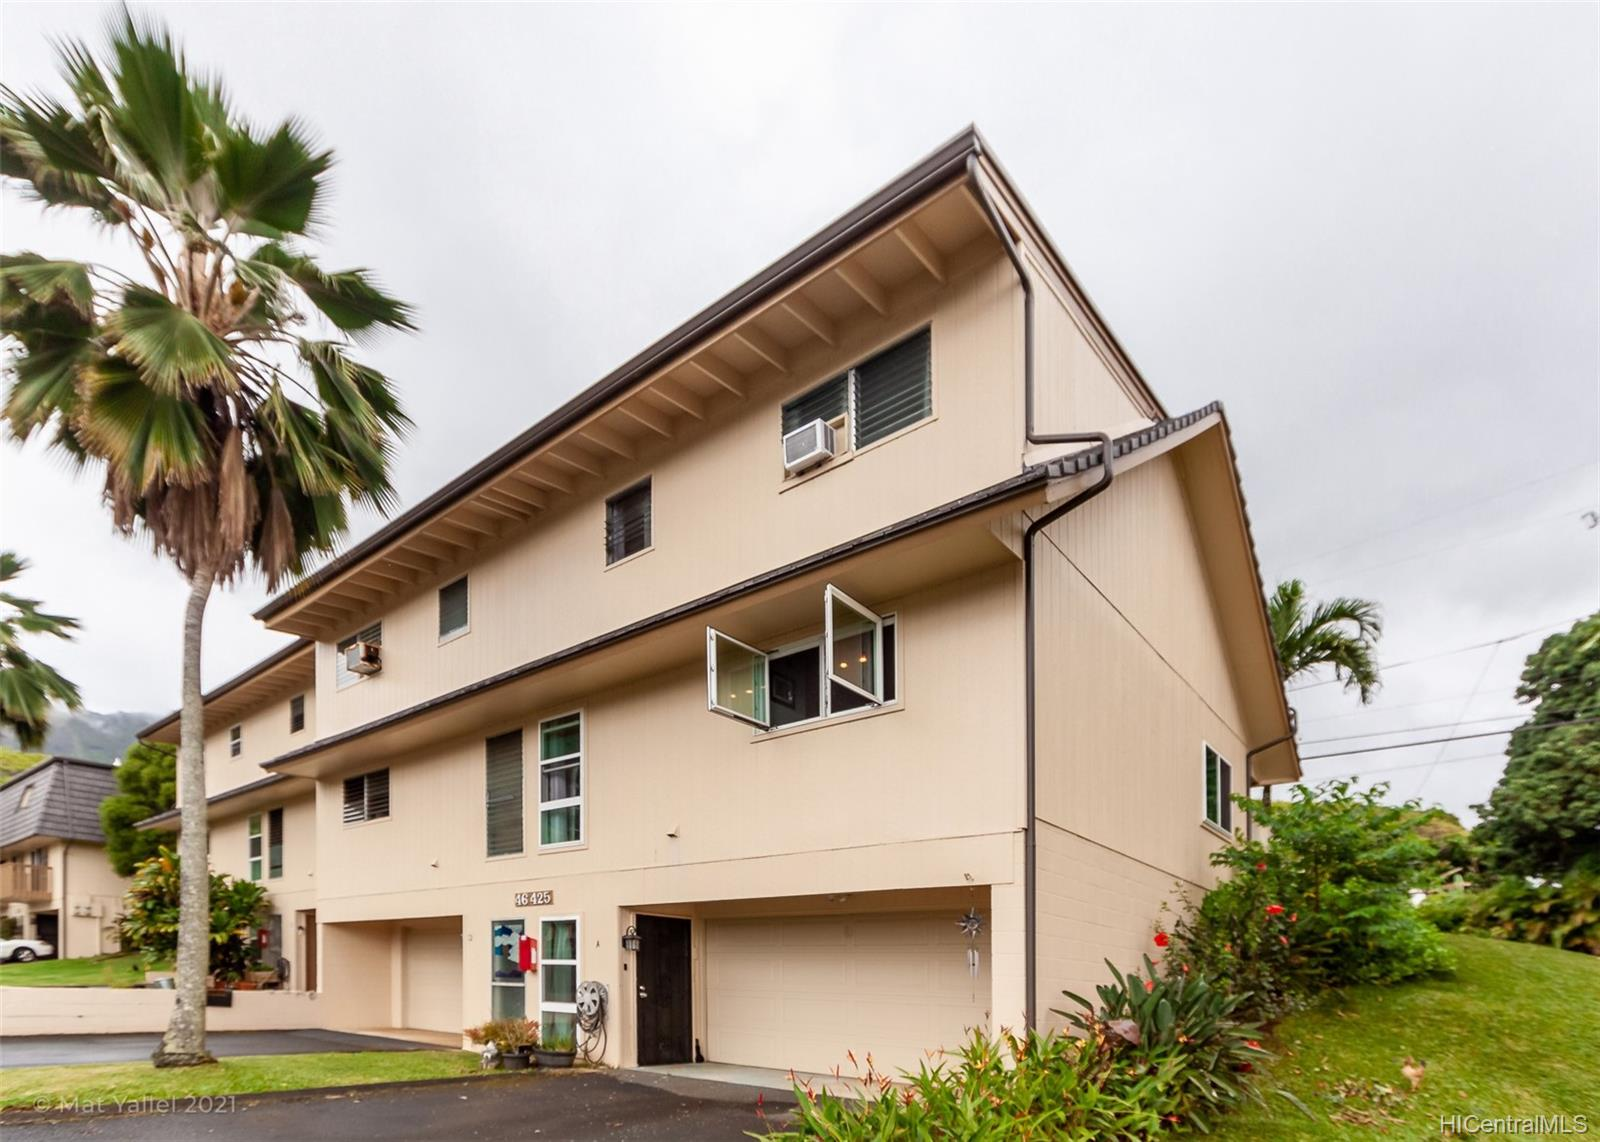 46-425 Kahuhipa Street townhouse # A, Kaneohe, Hawaii - photo 1 of 25